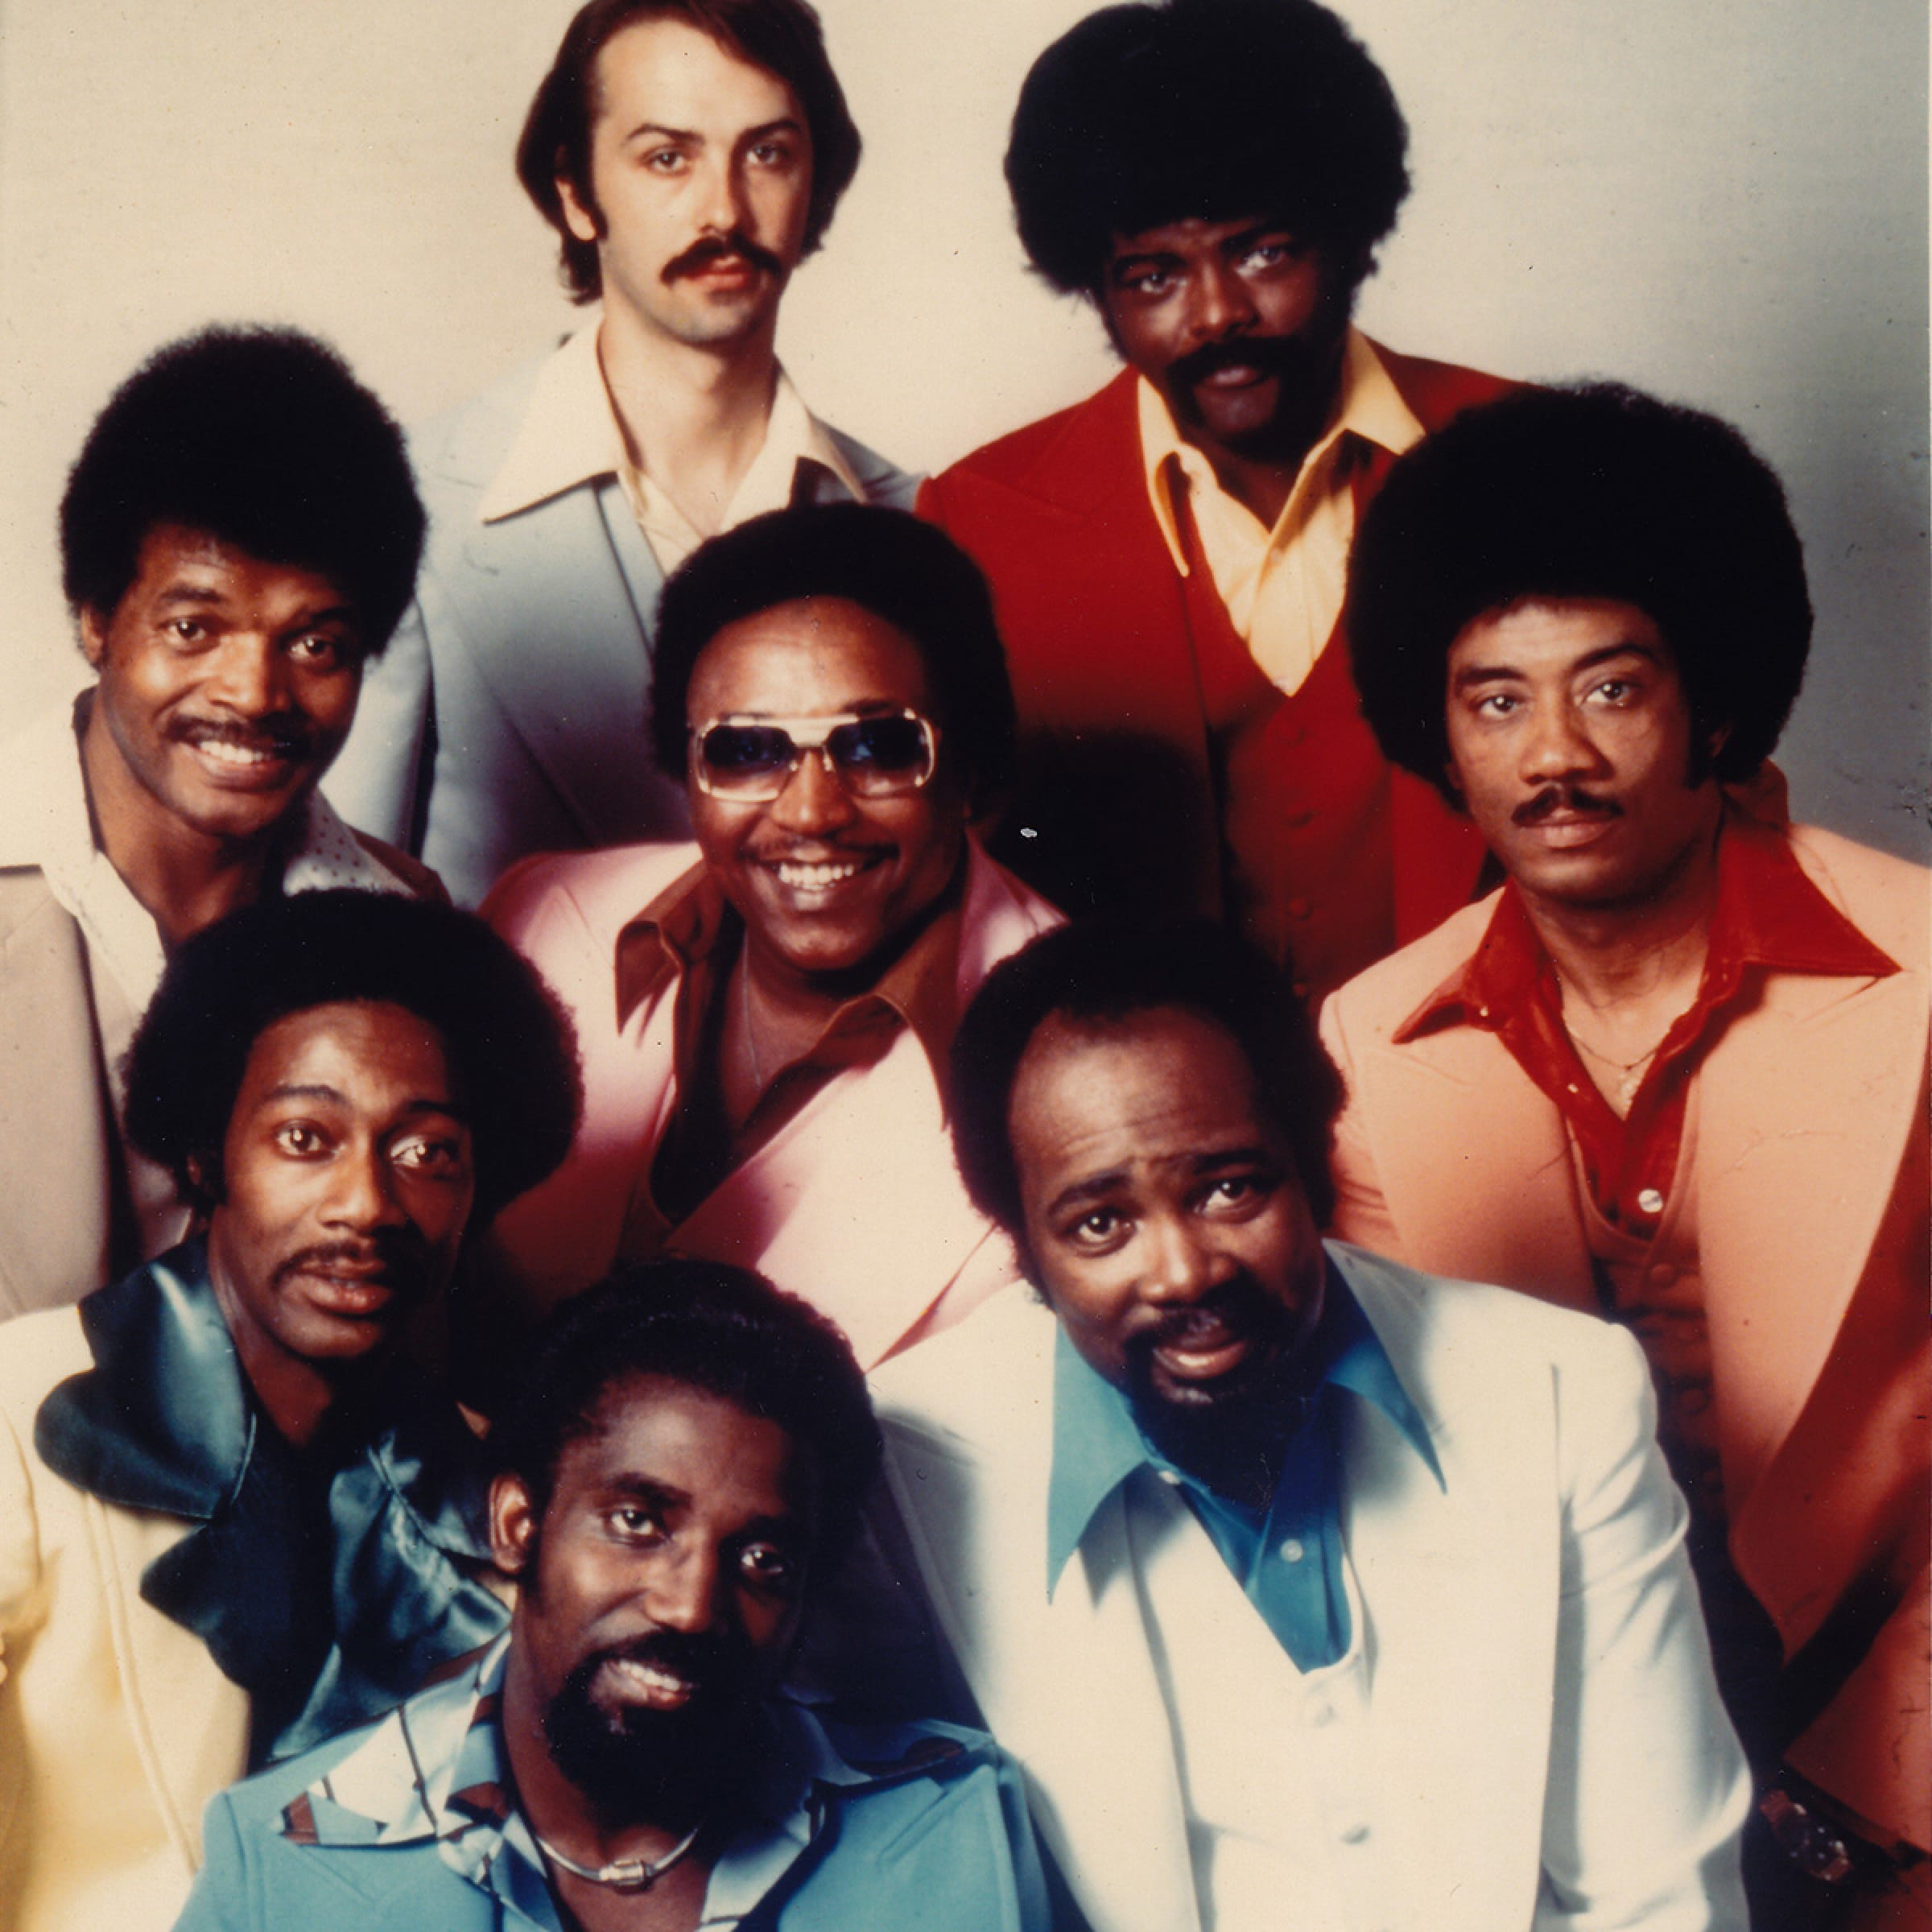 The Fatback Band in a posed photograph. Oh, the pastel, wide-lapel suits! Oh, the mustaches on every single one of them!